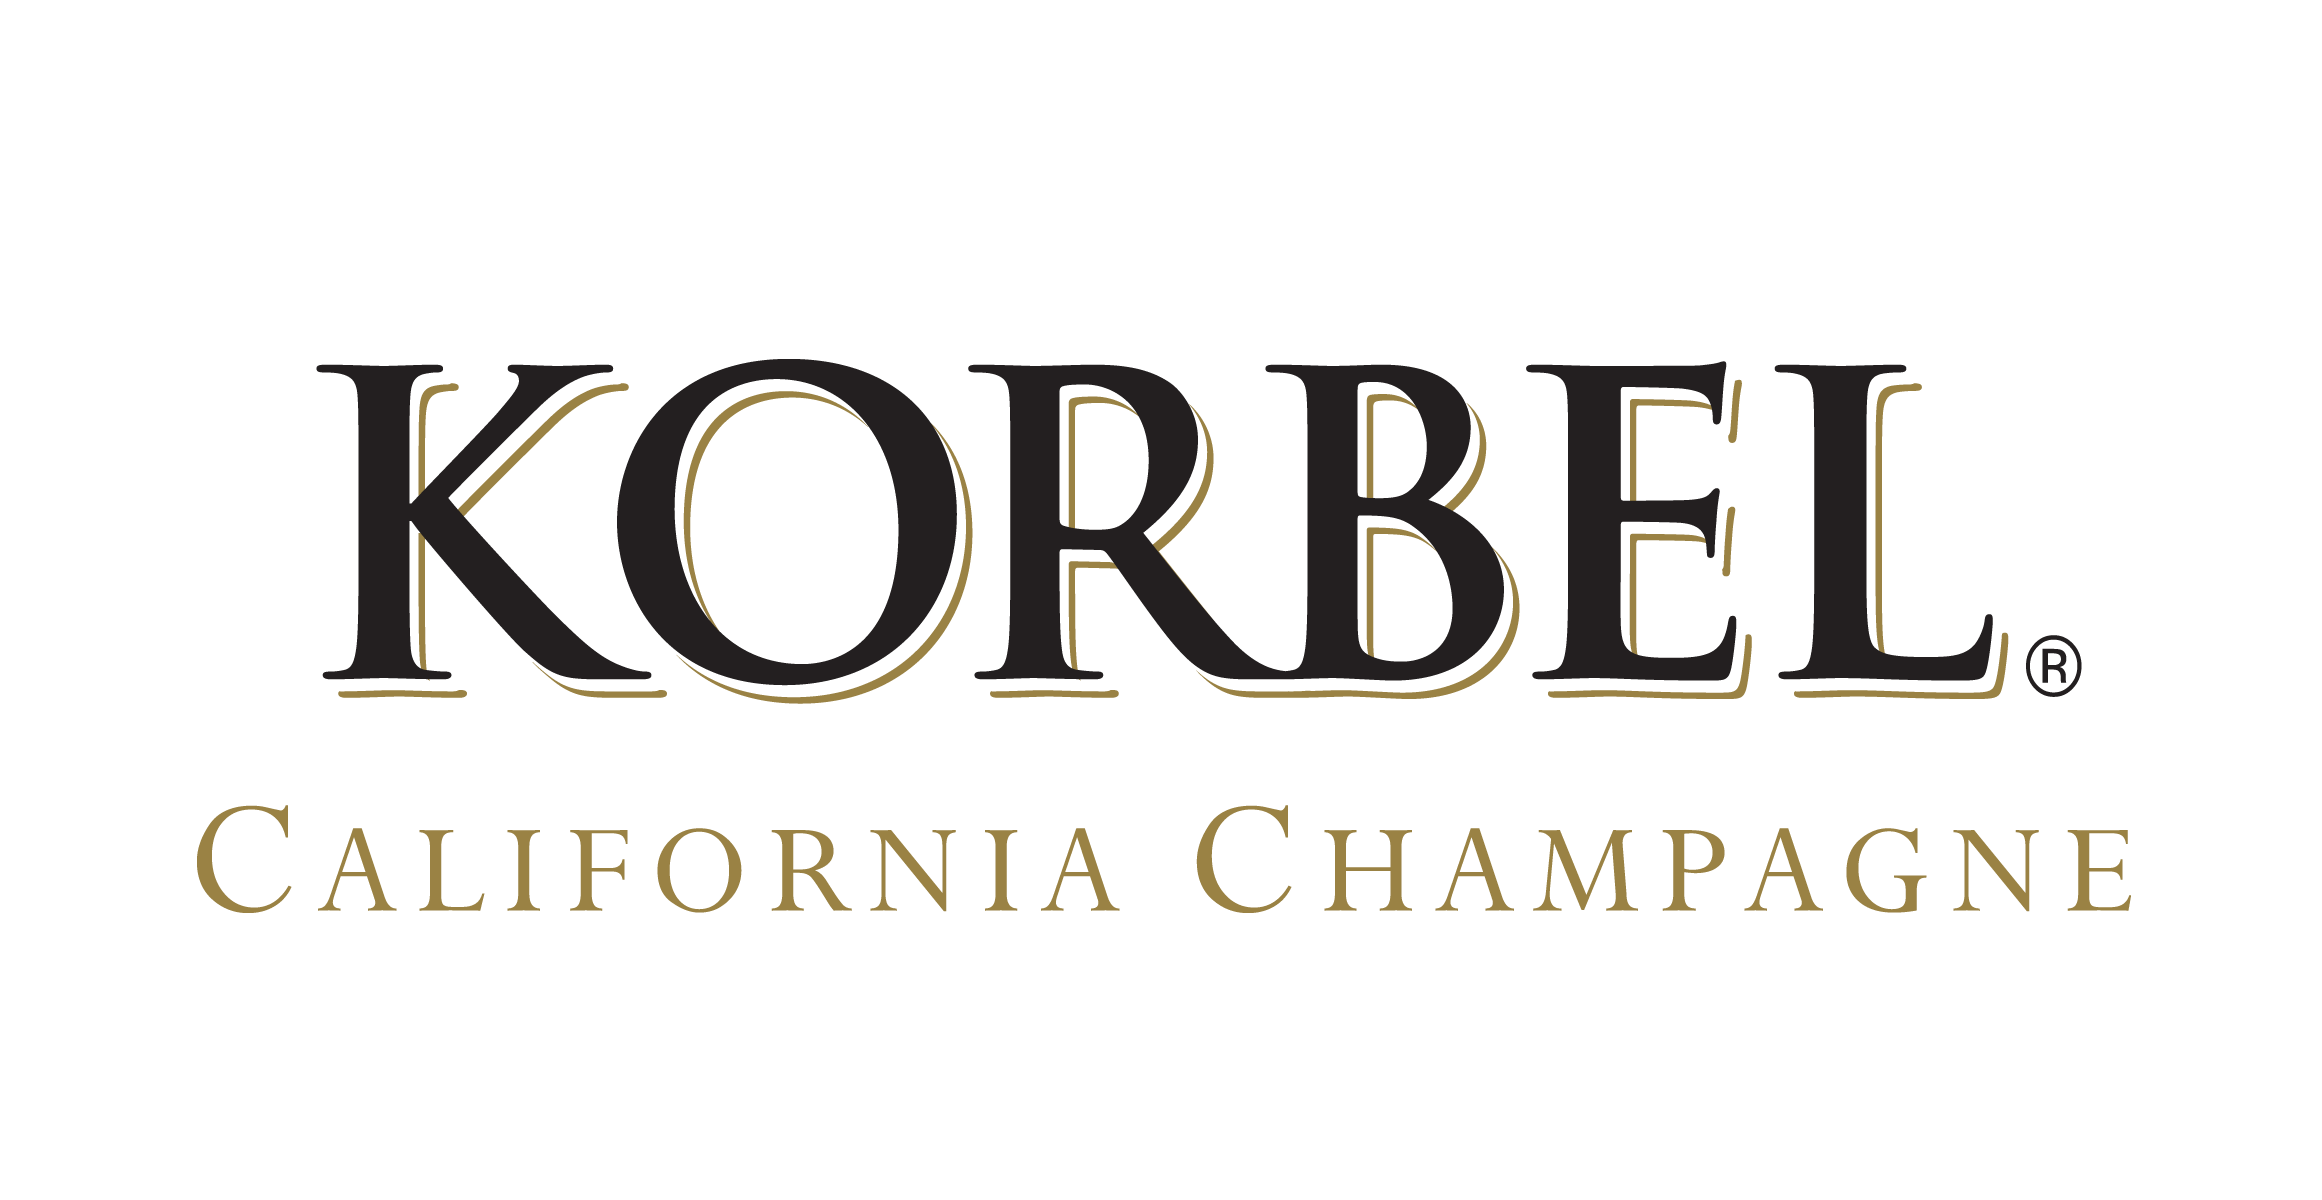 kisspng-korbel-champagne-cellars-korbel-sonoma-county-ca-kentucky-derby-5b4addf7a64159.812760771531633143681.png